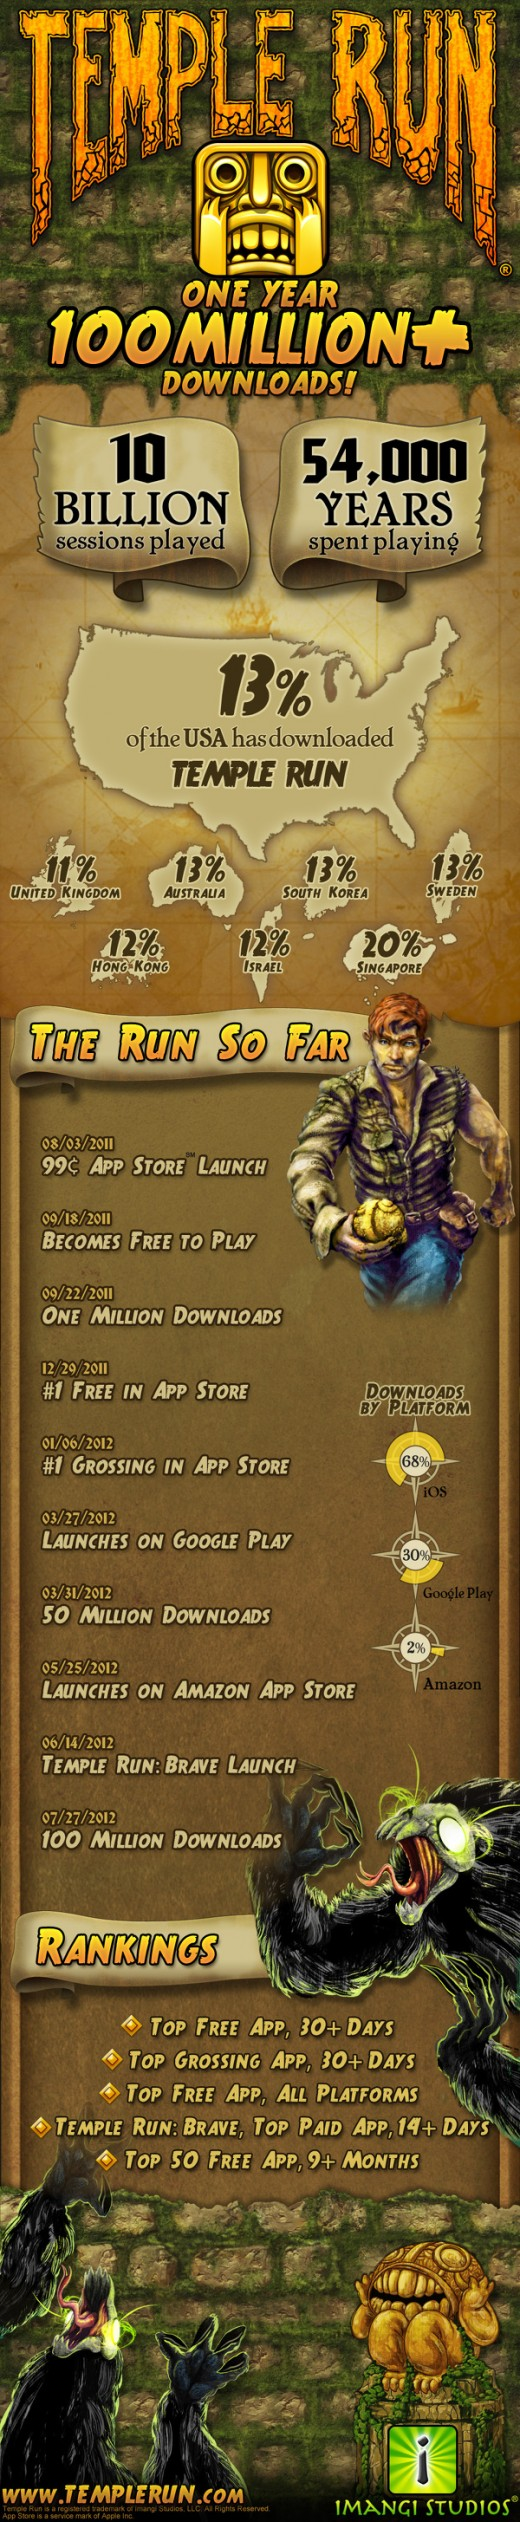 Infografía sobre Temple Run